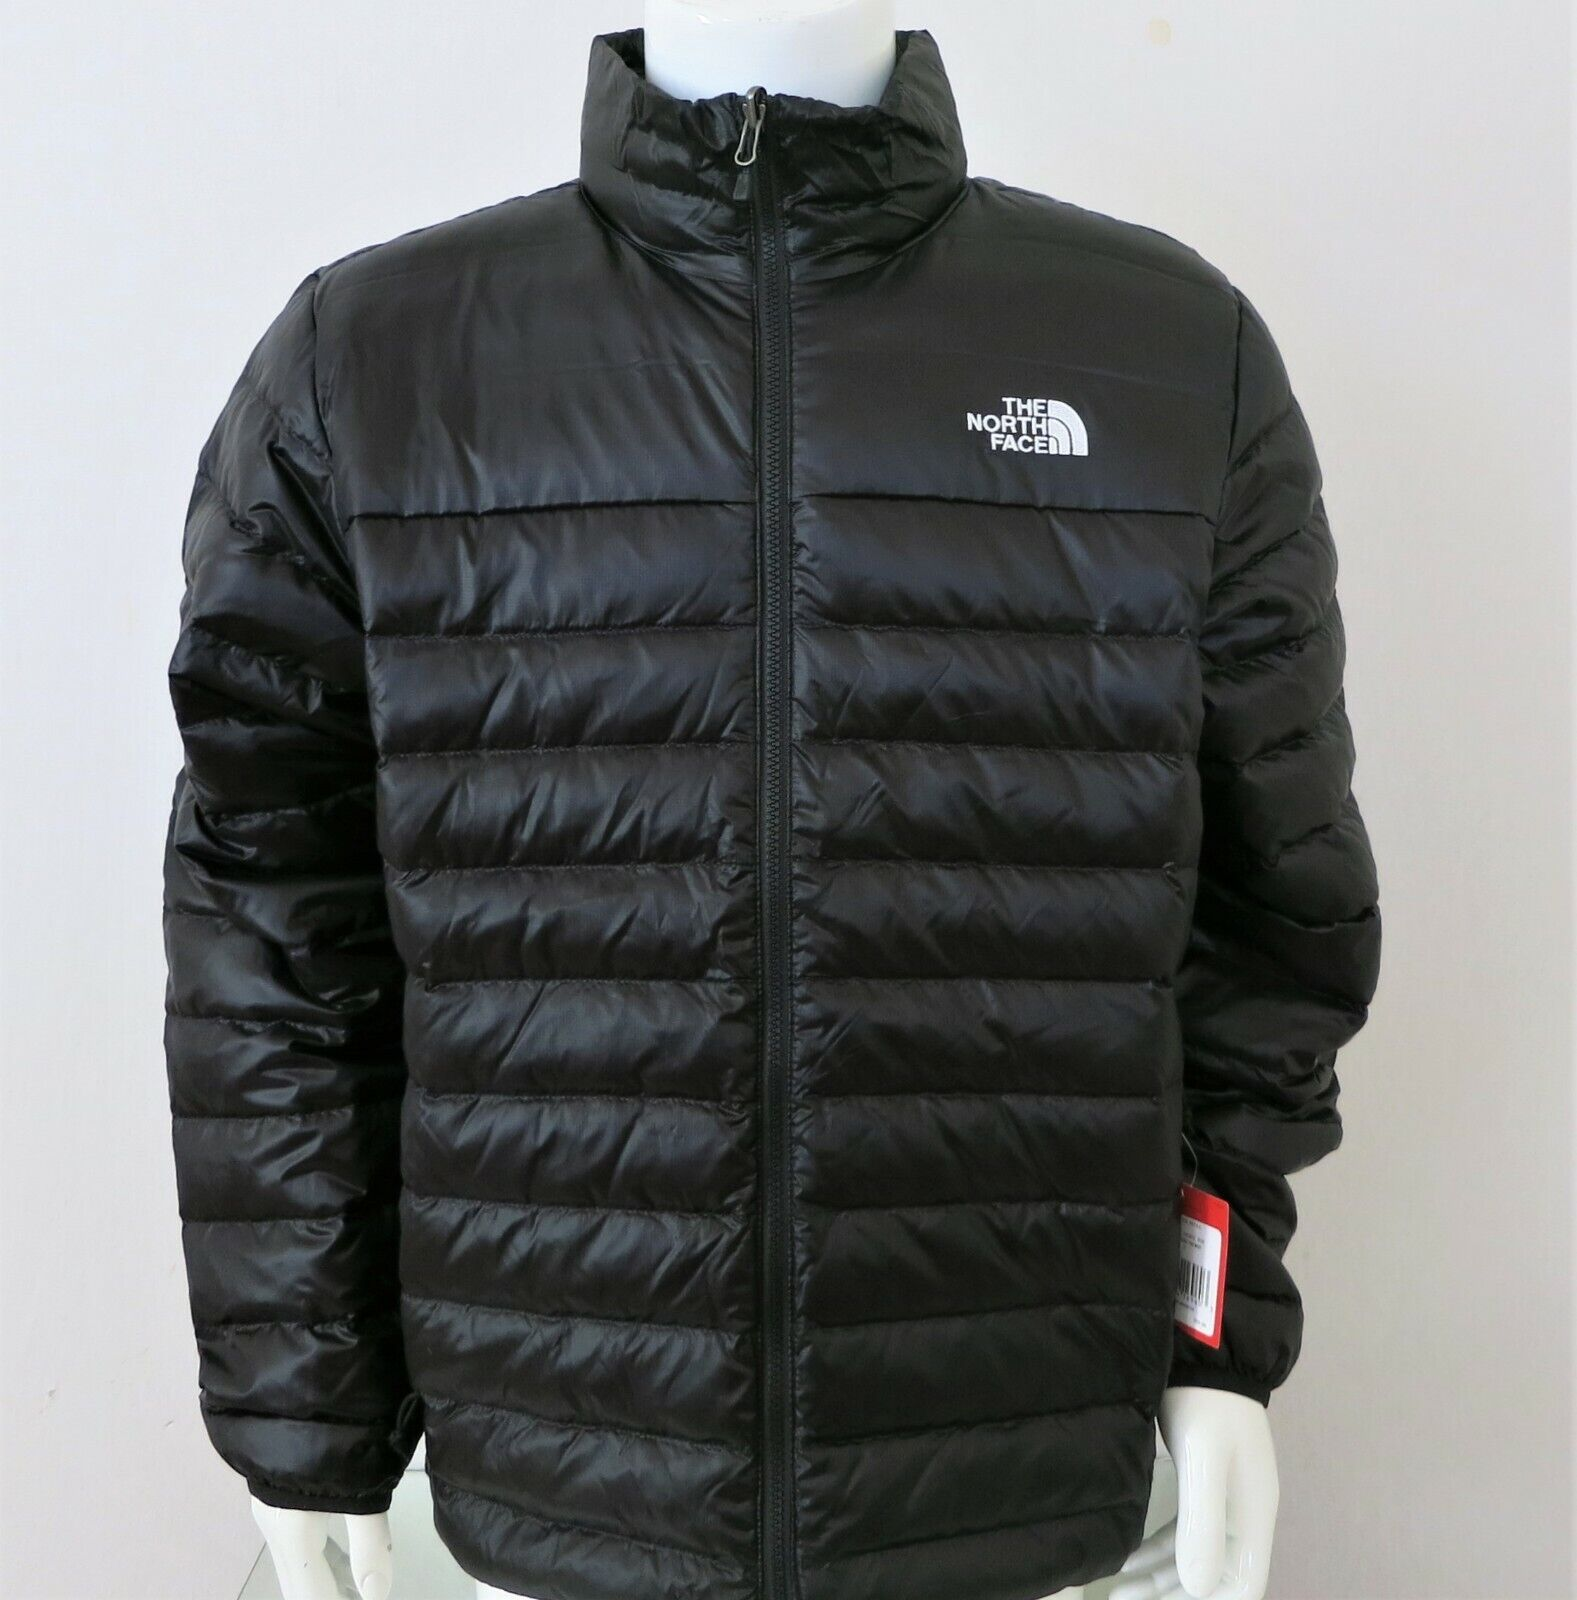 THE NORTH FACE Men's Flare 550 Down Insulated Puffer Jacket Black White sz S XXL